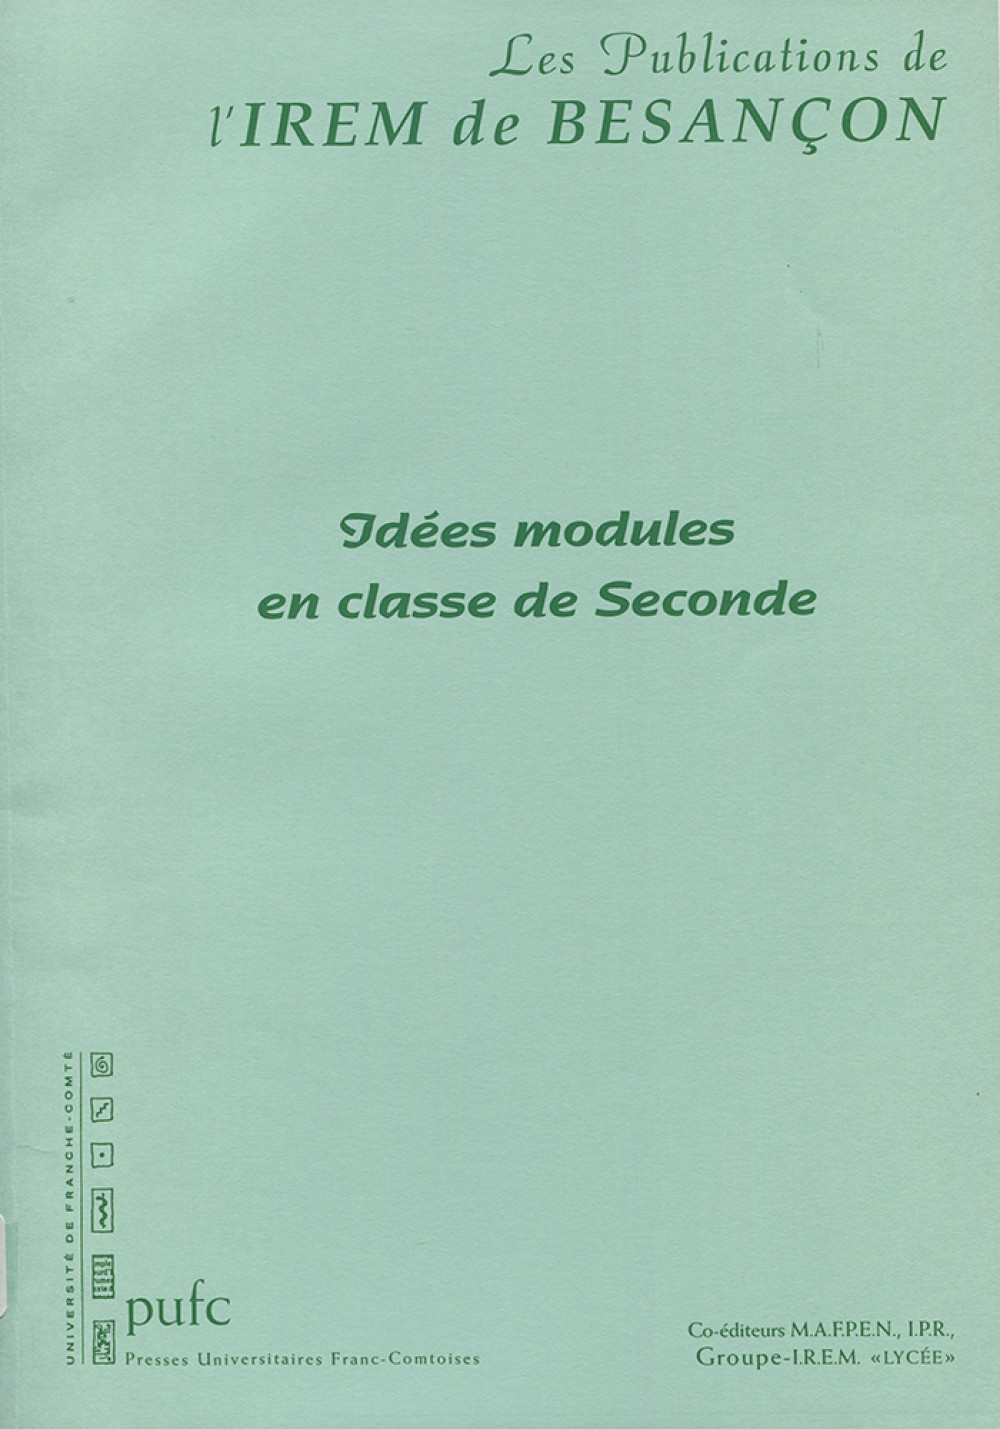 Idées modules en classe de Seconde